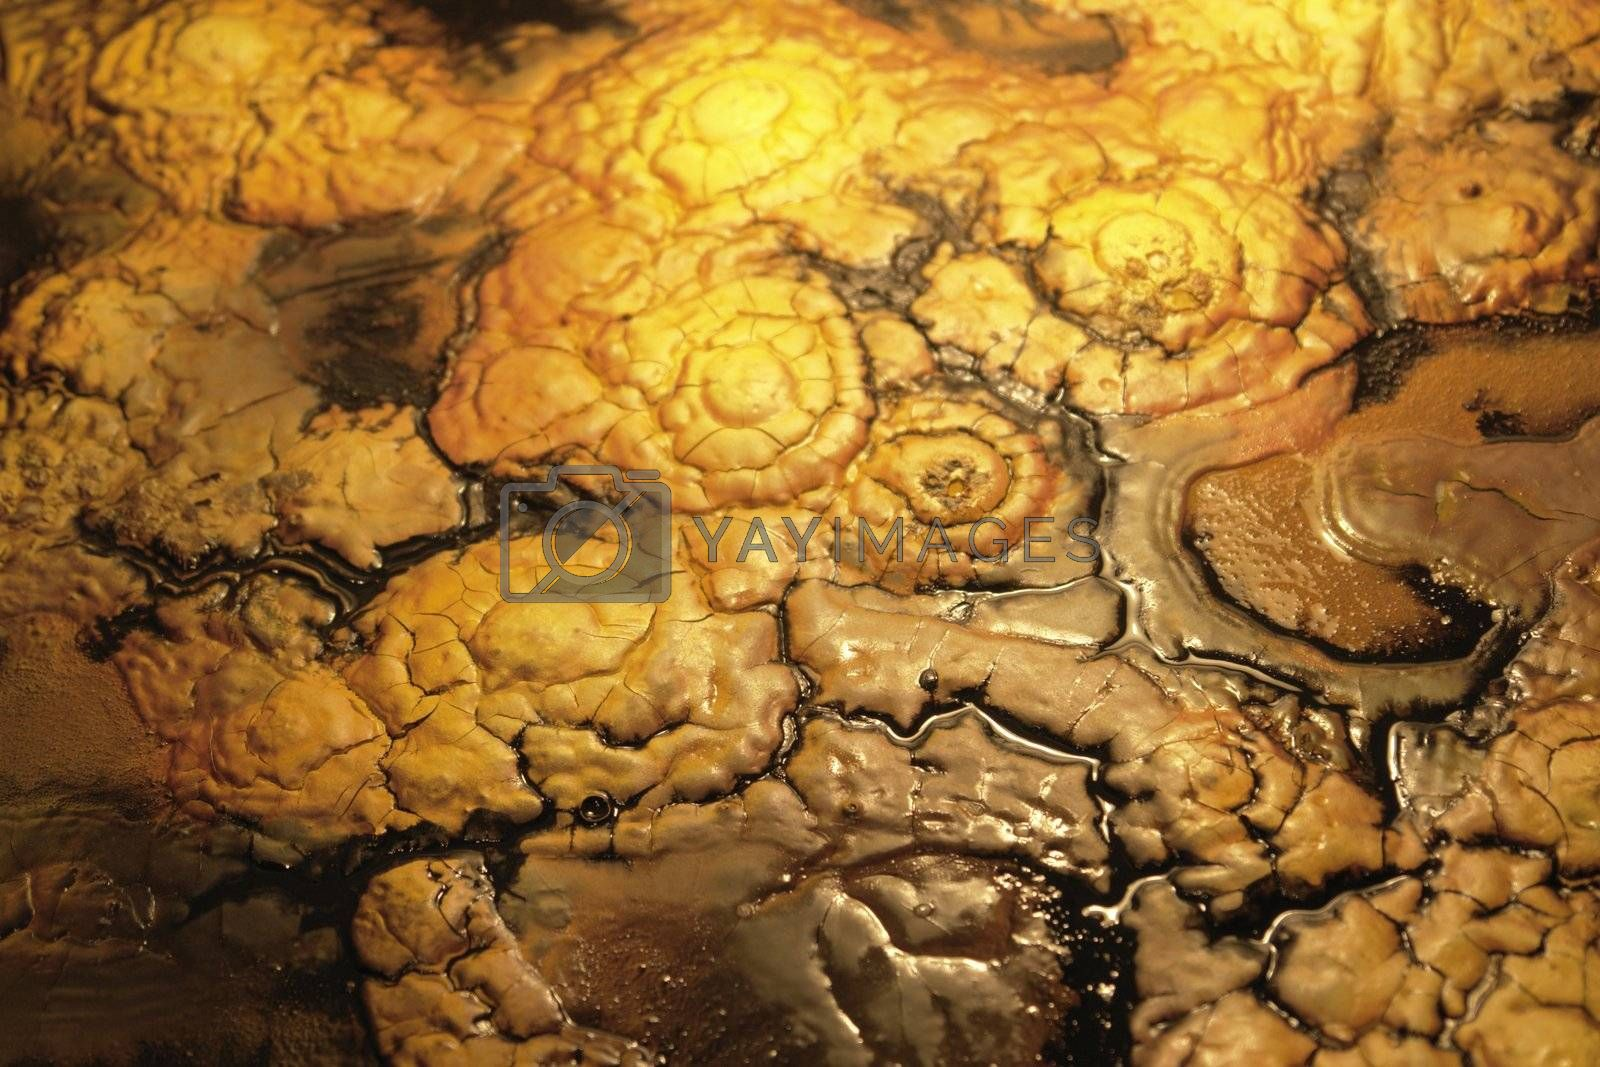 abstract full frame background showing wet paint detail with pastose brown and yellow colors